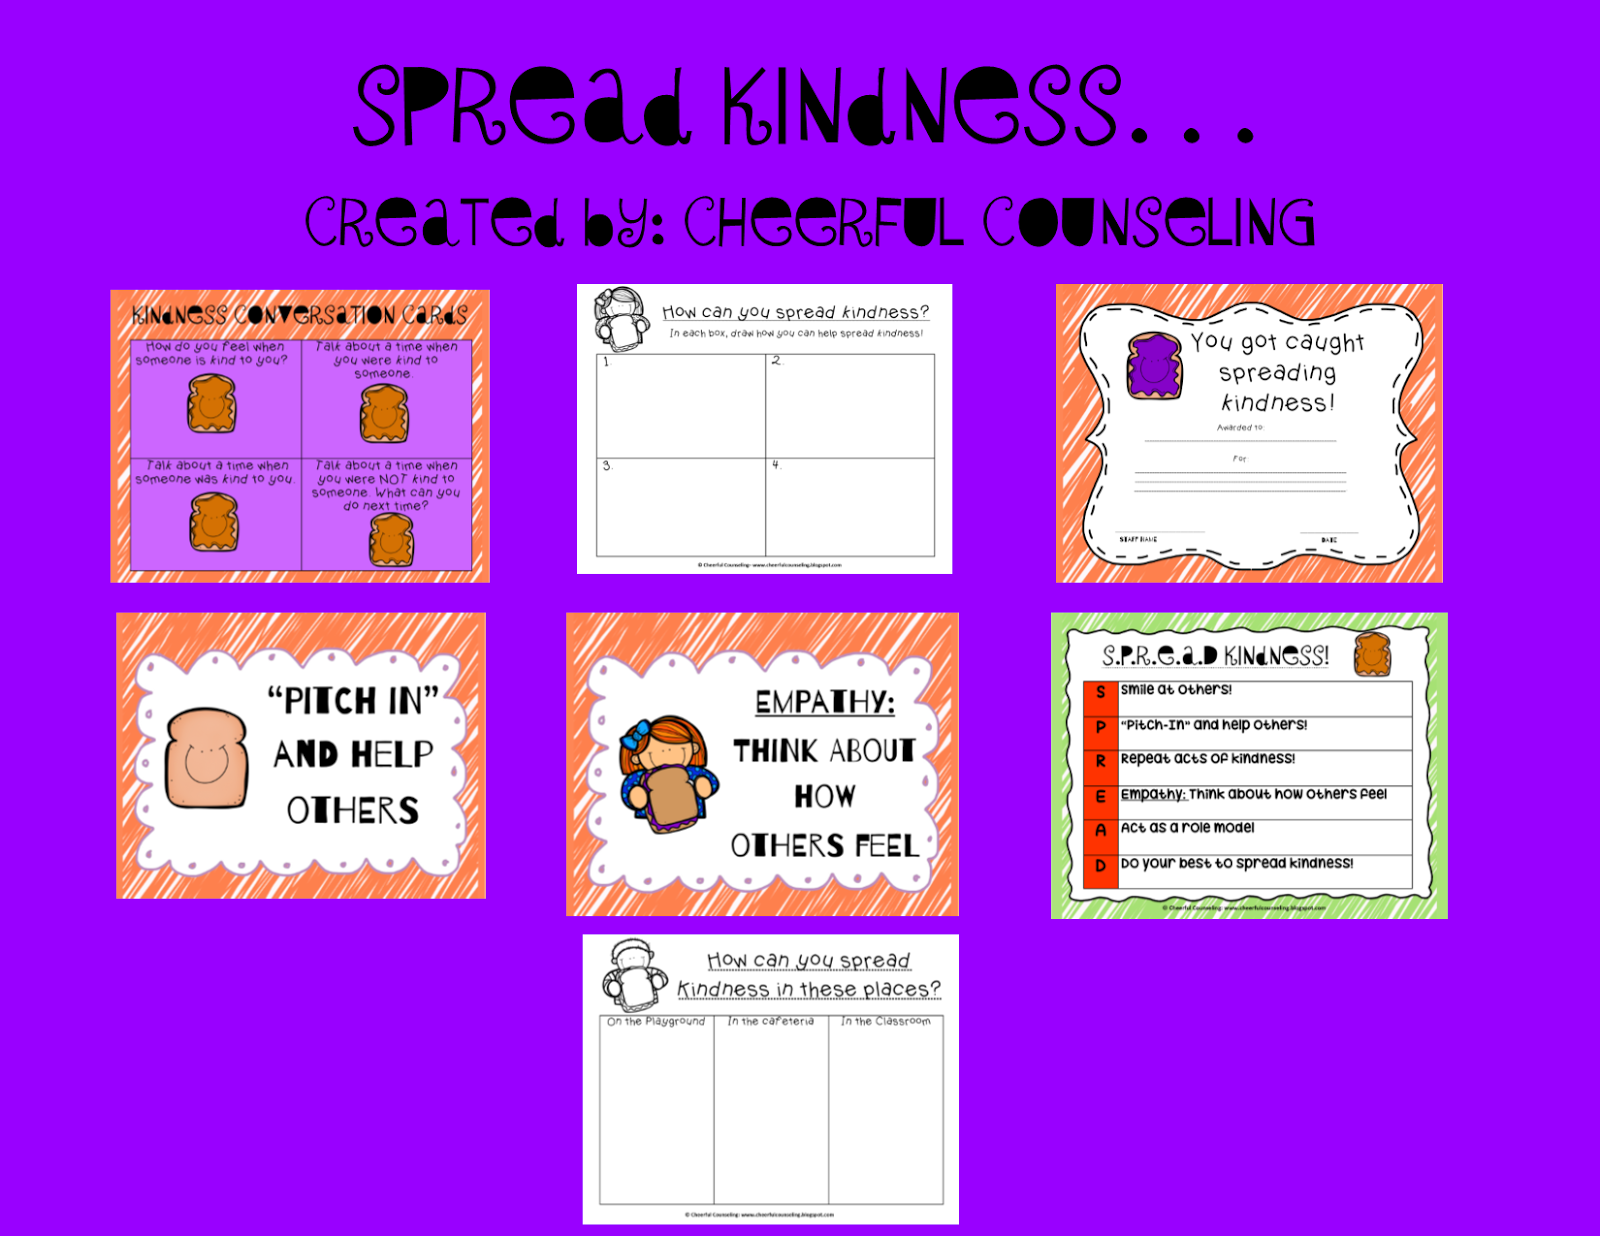 Cheerful Counseling Spreading Kindness